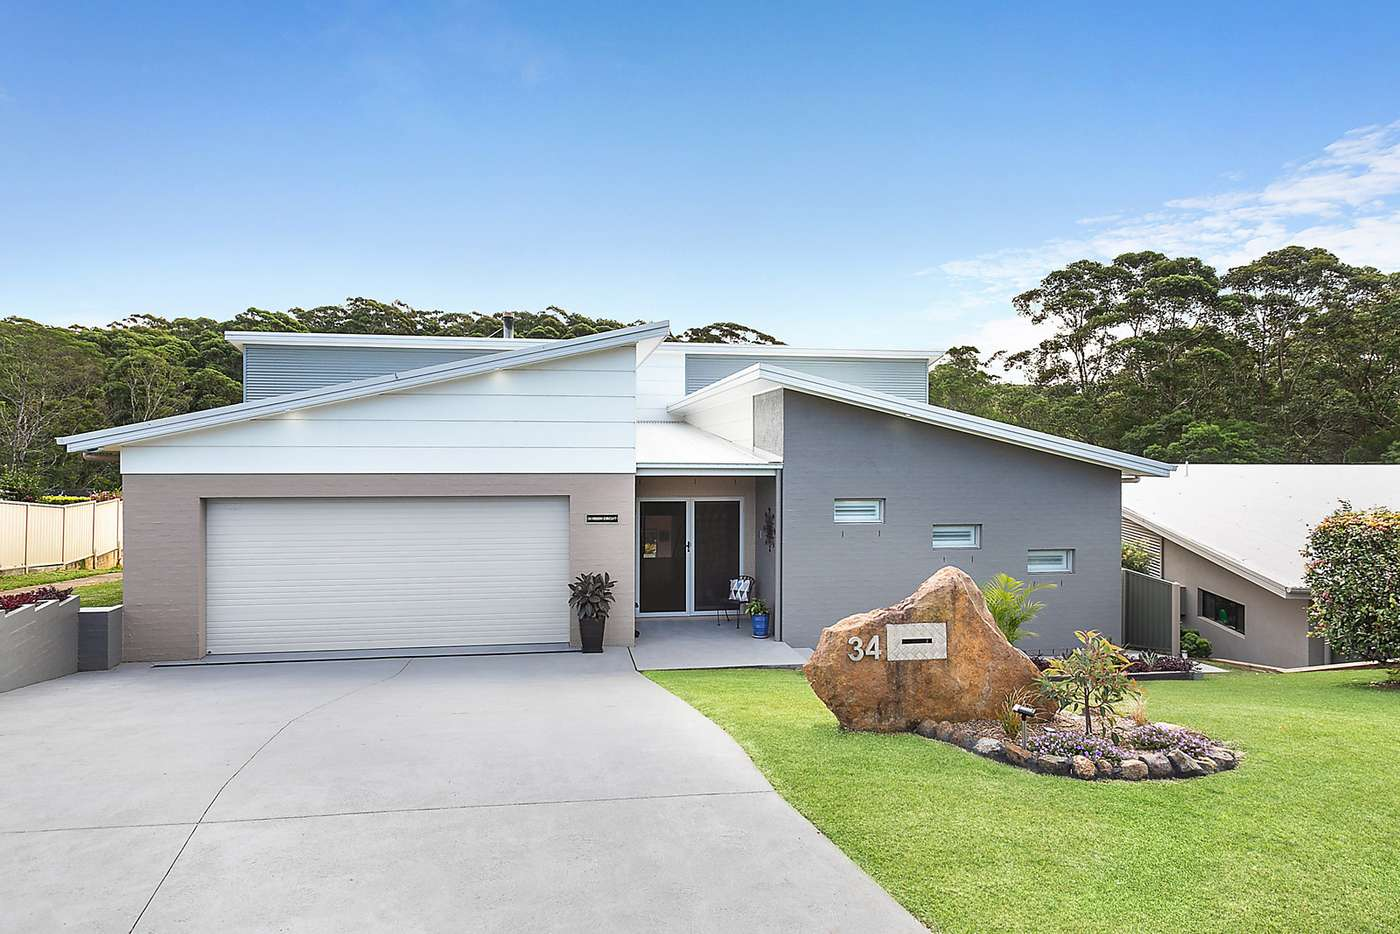 Main view of Homely house listing, 34 Mison Circuit, Mollymook NSW 2539